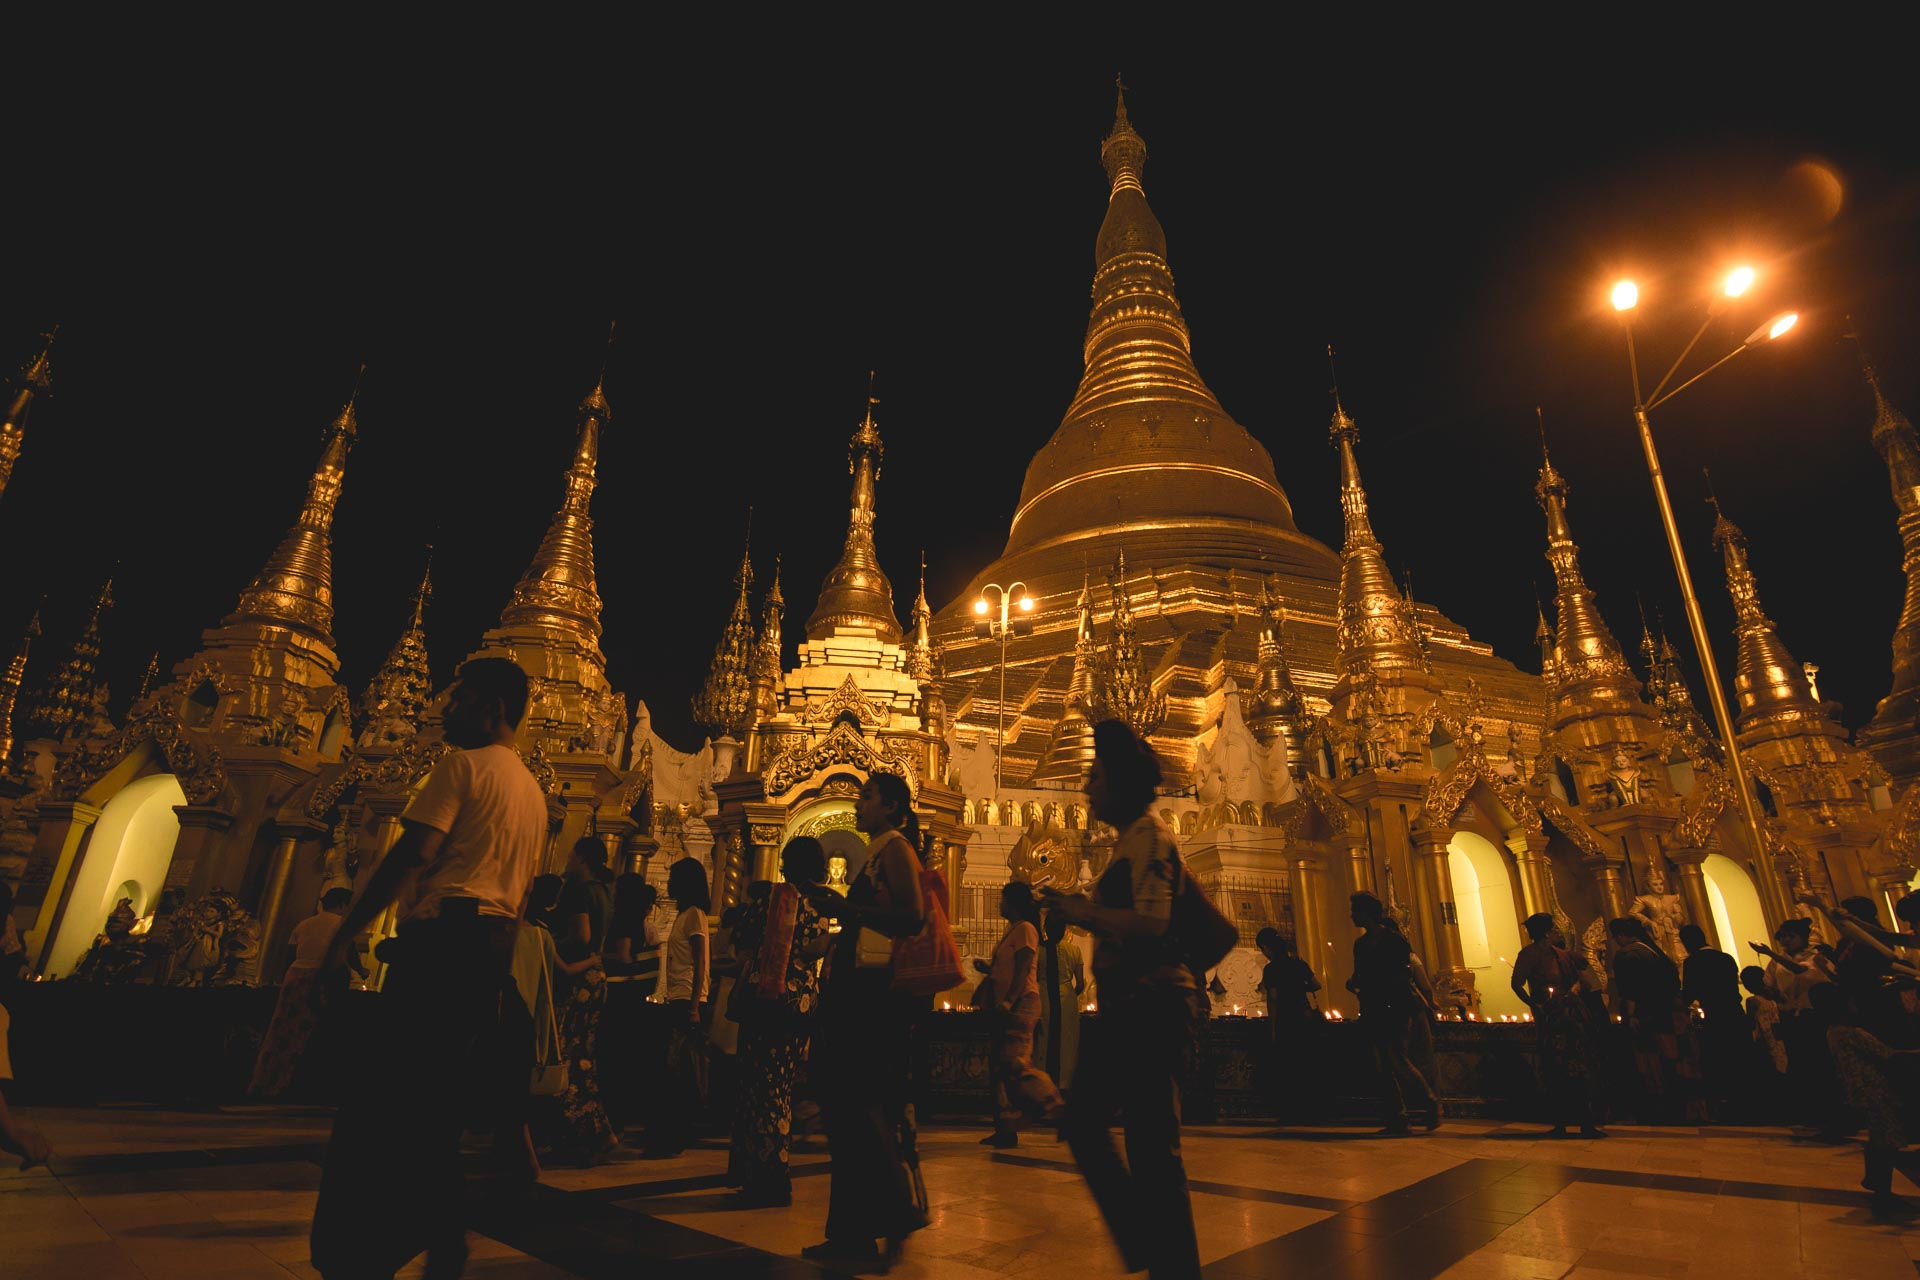 The giant Shwedagon pagoda at night in Yangon. Myanmar